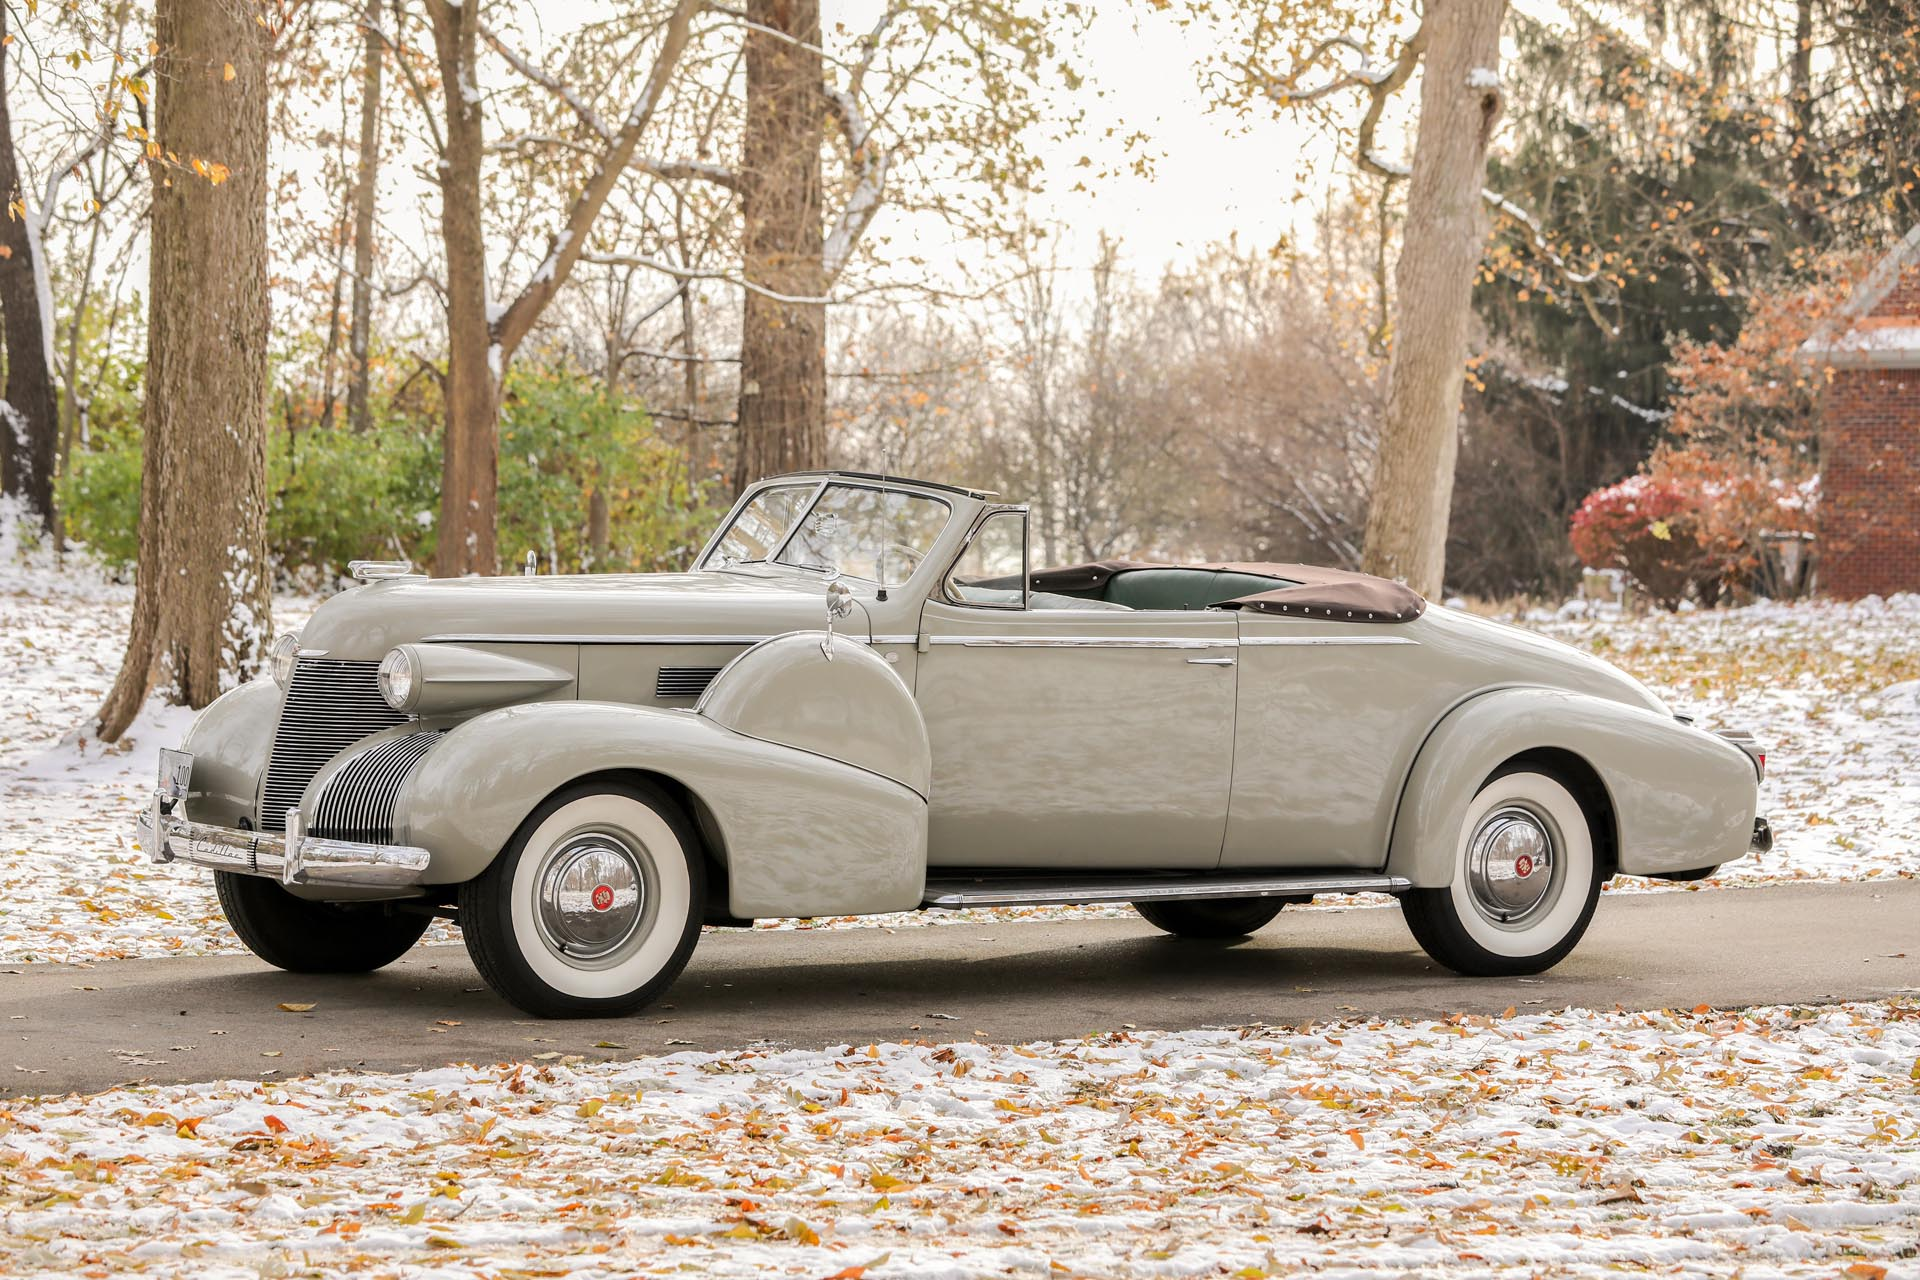 1939 Cadillac  Series 75 Fleetwood Convertible Coupe